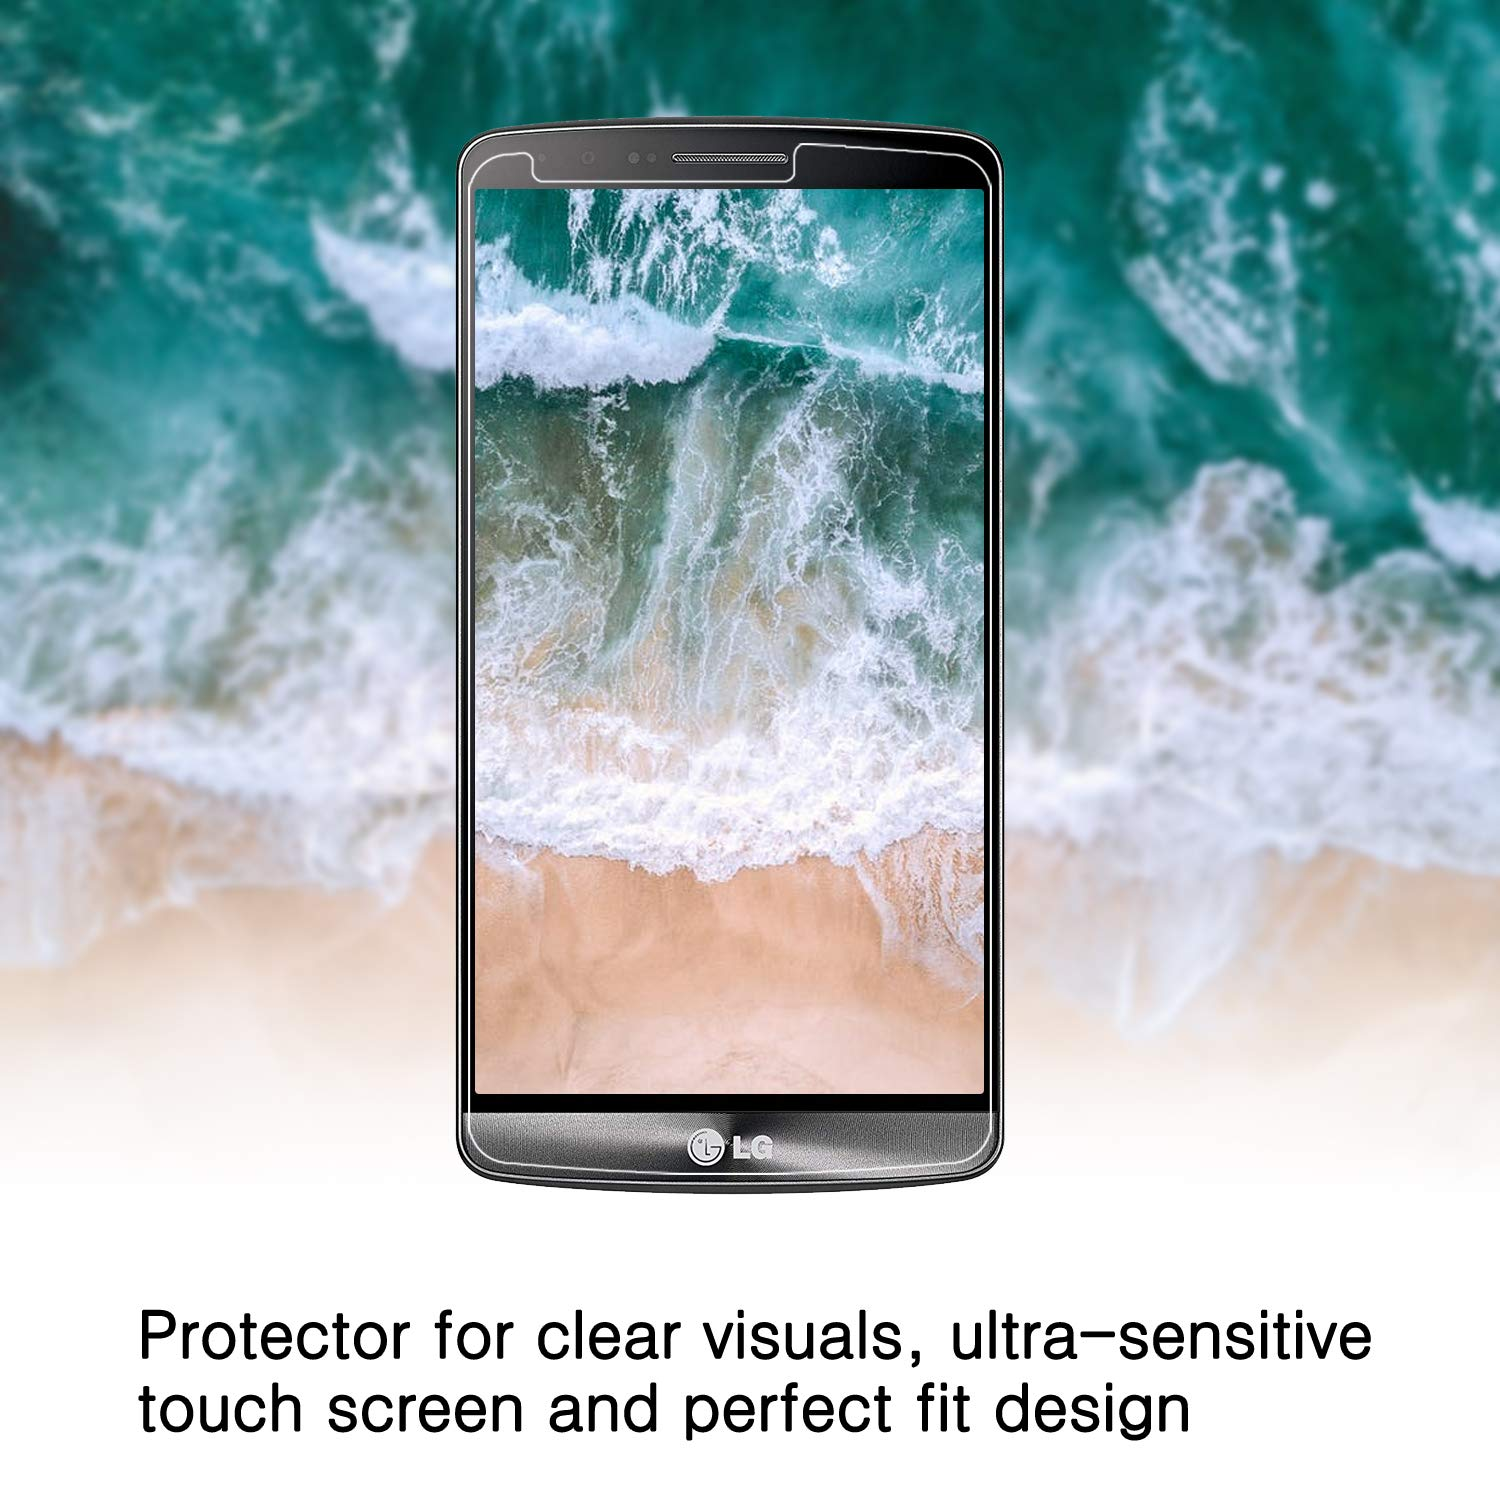 KATIN LG G3 Screen Protector - Easy to Install with Lifetime Replacement Warranty 2-Pack Tempered Glass Screen Protector for LG G3 Bubble Free